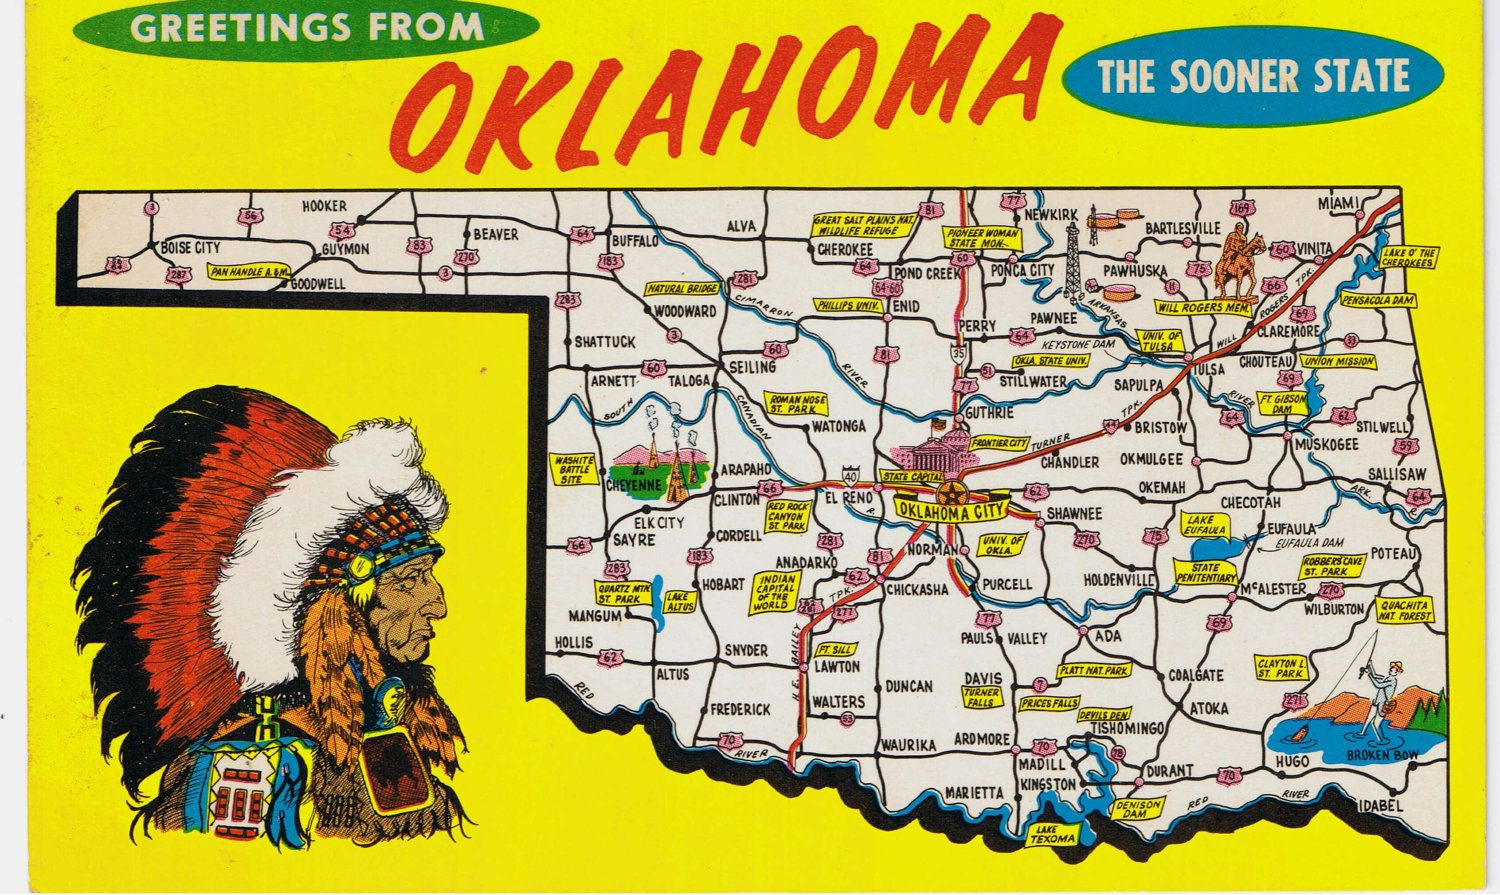 State Map Of Kansas And Oklahoma.Pin By Jeanne Scott On Just State The Facts In 2019 Pinterest